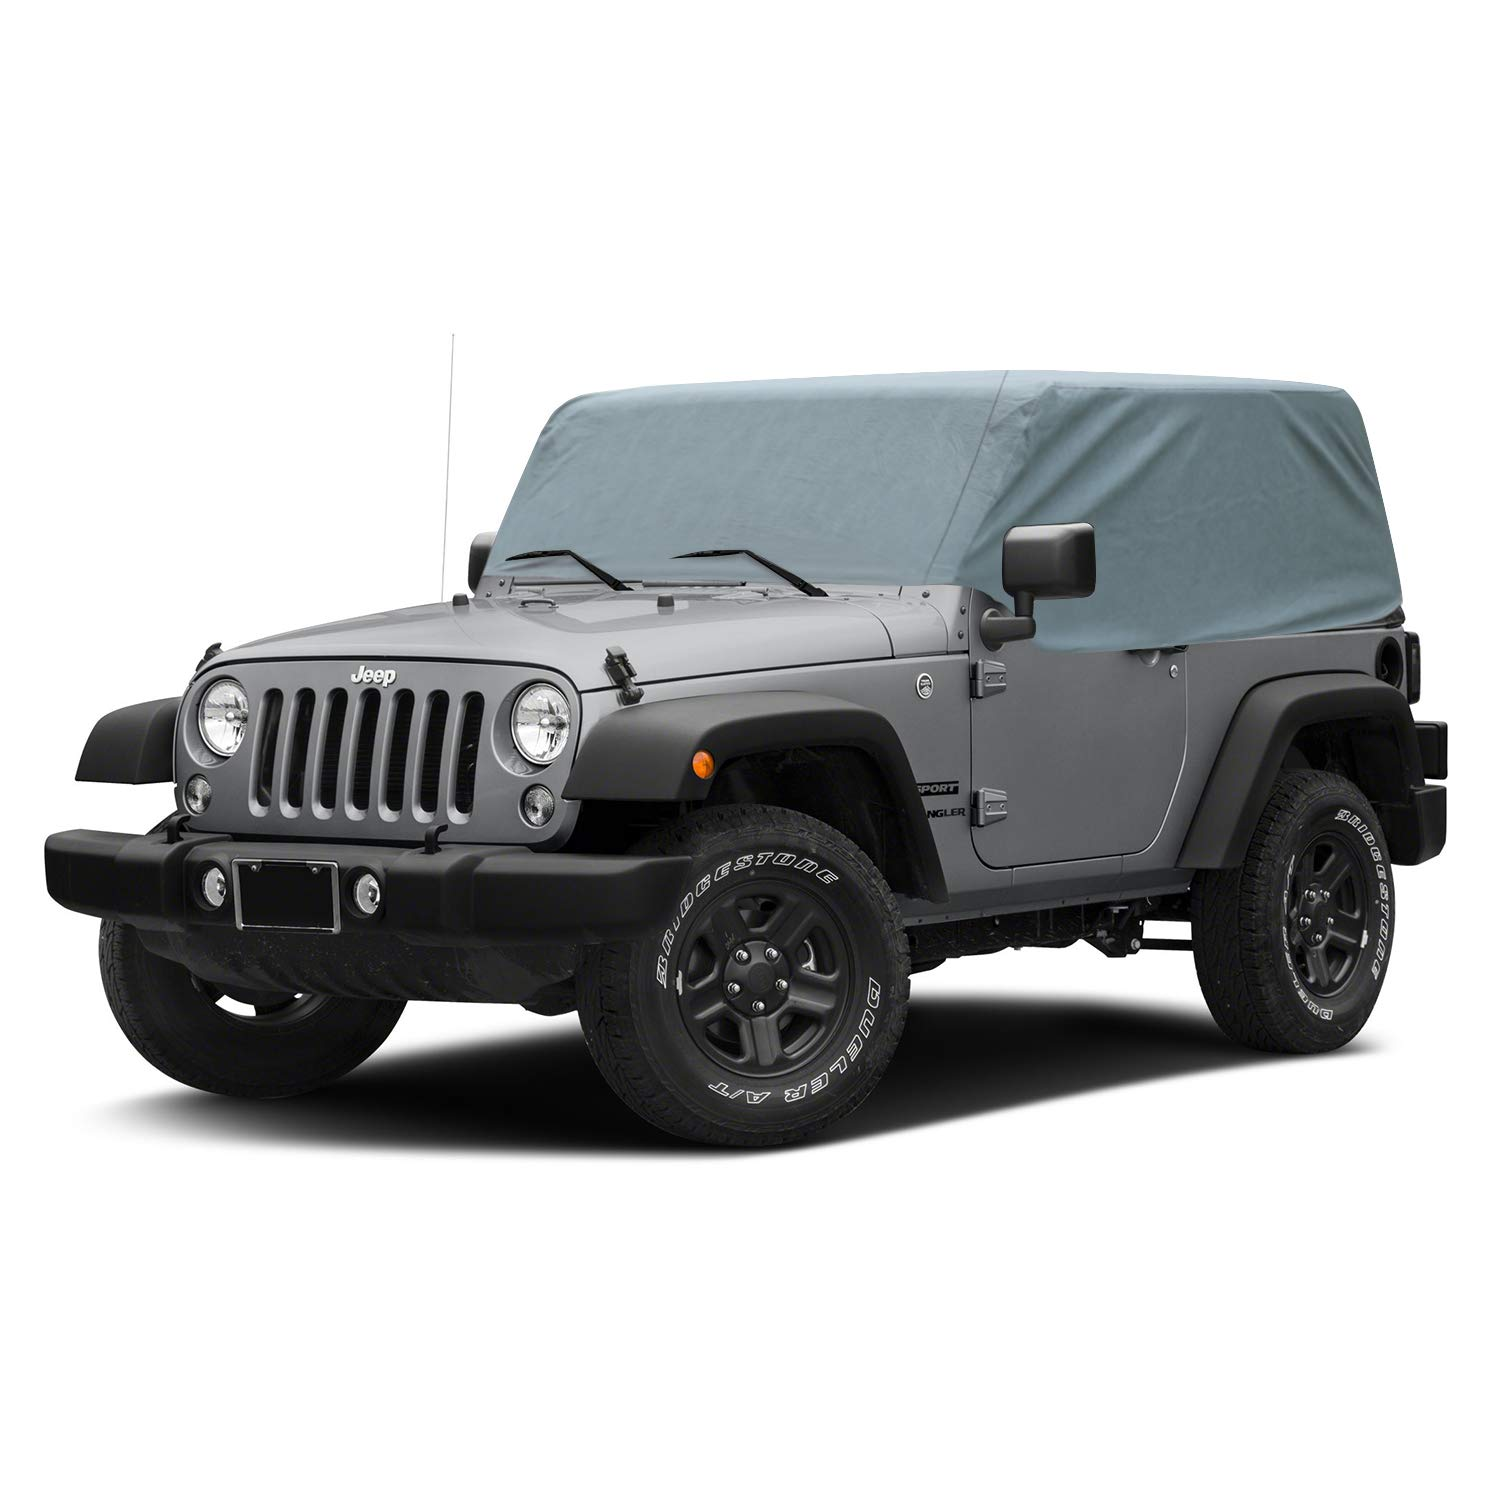 Over Installed Top OOFIT Waterproof 5-Ply Durable Cab Cover Custom Fit 2007-2018 Jeep Wrangler Unlimited 4-Door Dustproof Car Cover Windproof Dust Proof Scratch Proof /& Adhesive Repair Patch